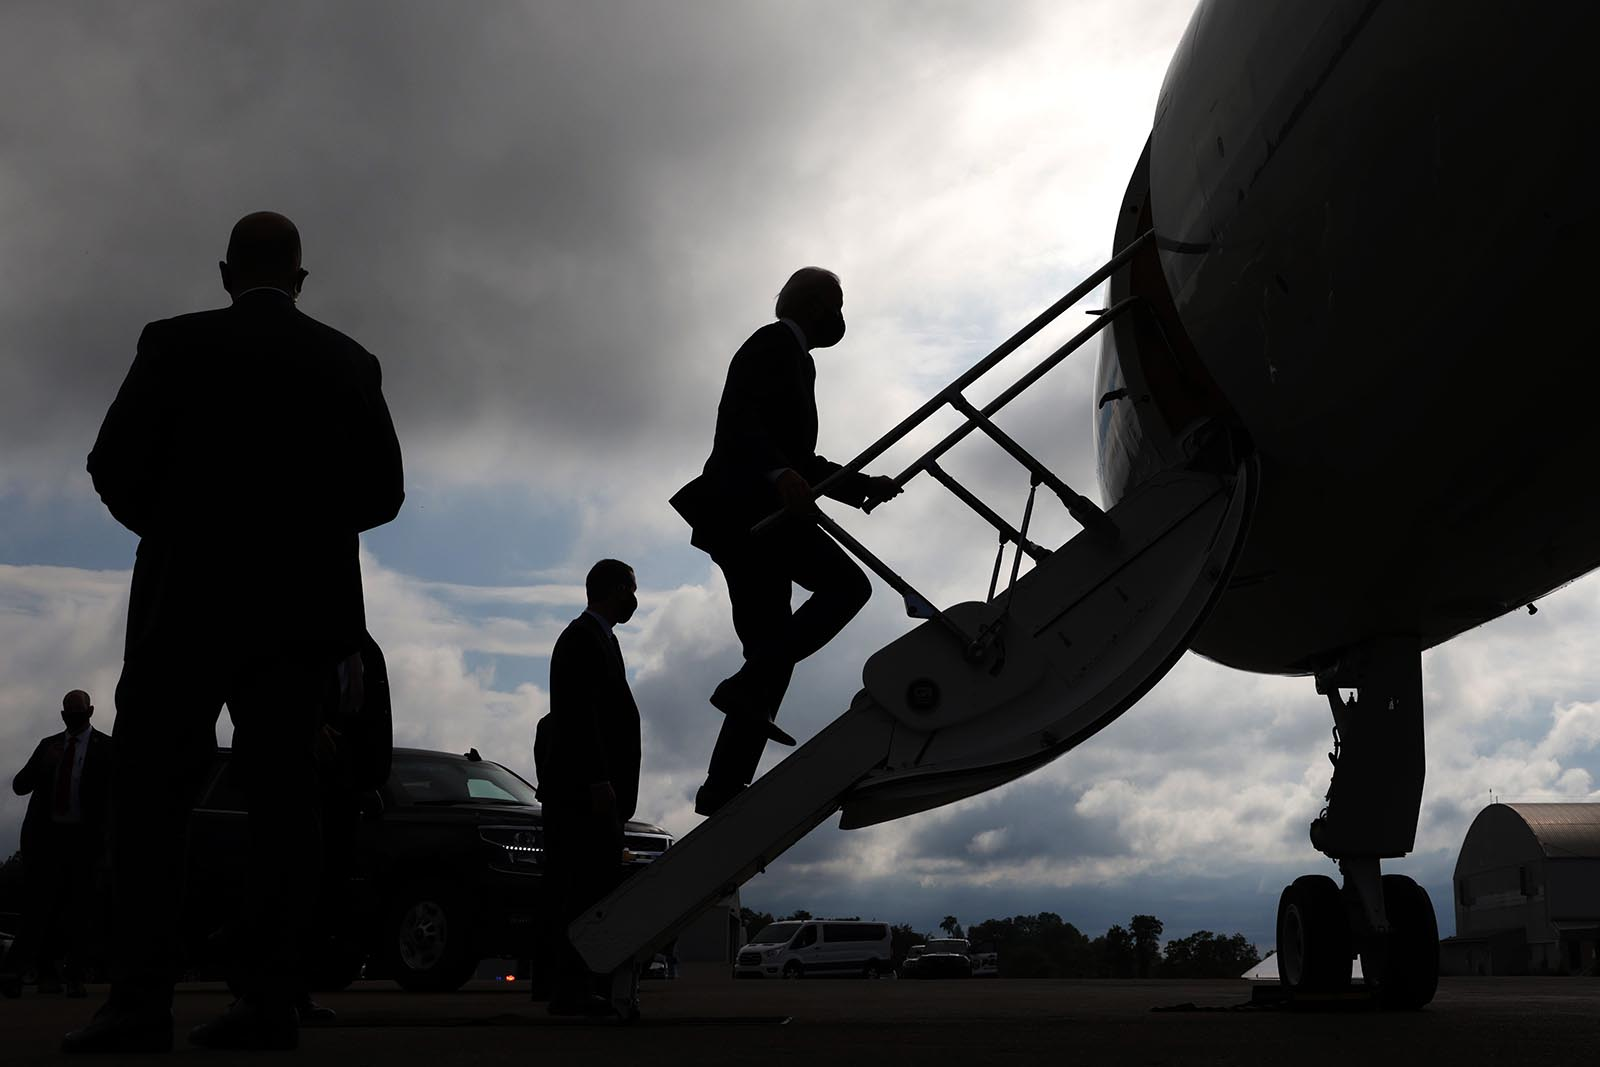 Democratic presidential candidate former Vice President Joe Biden boards a plane at Allegheny County Airport on August 31 in West Mifflin, Pennsylvania.